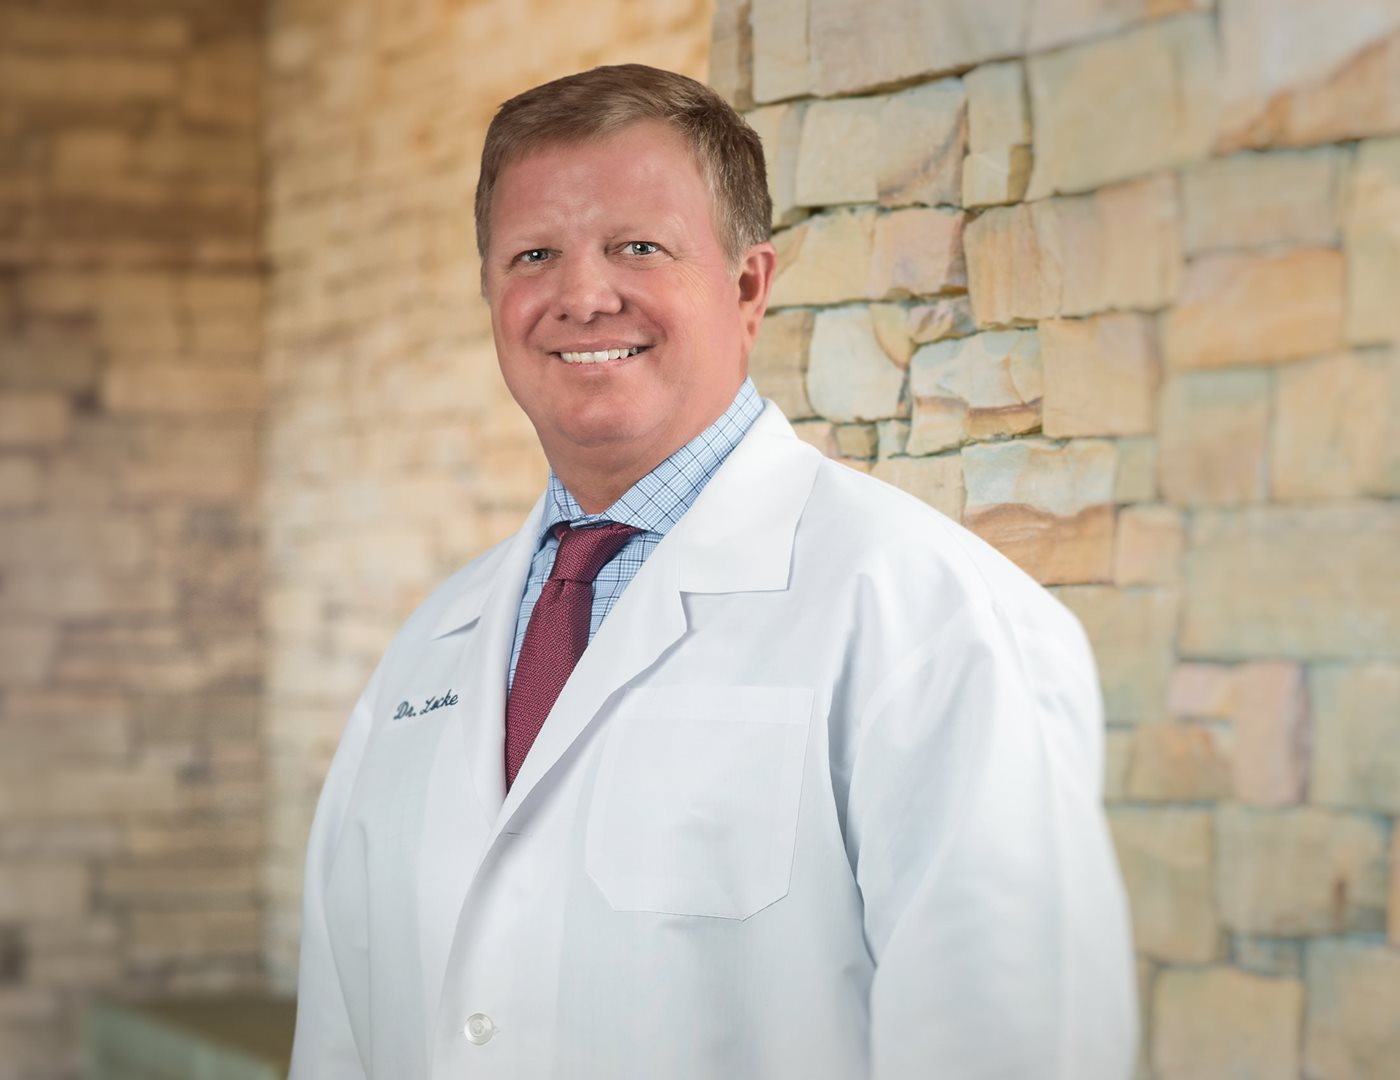 Mark Locke, MD